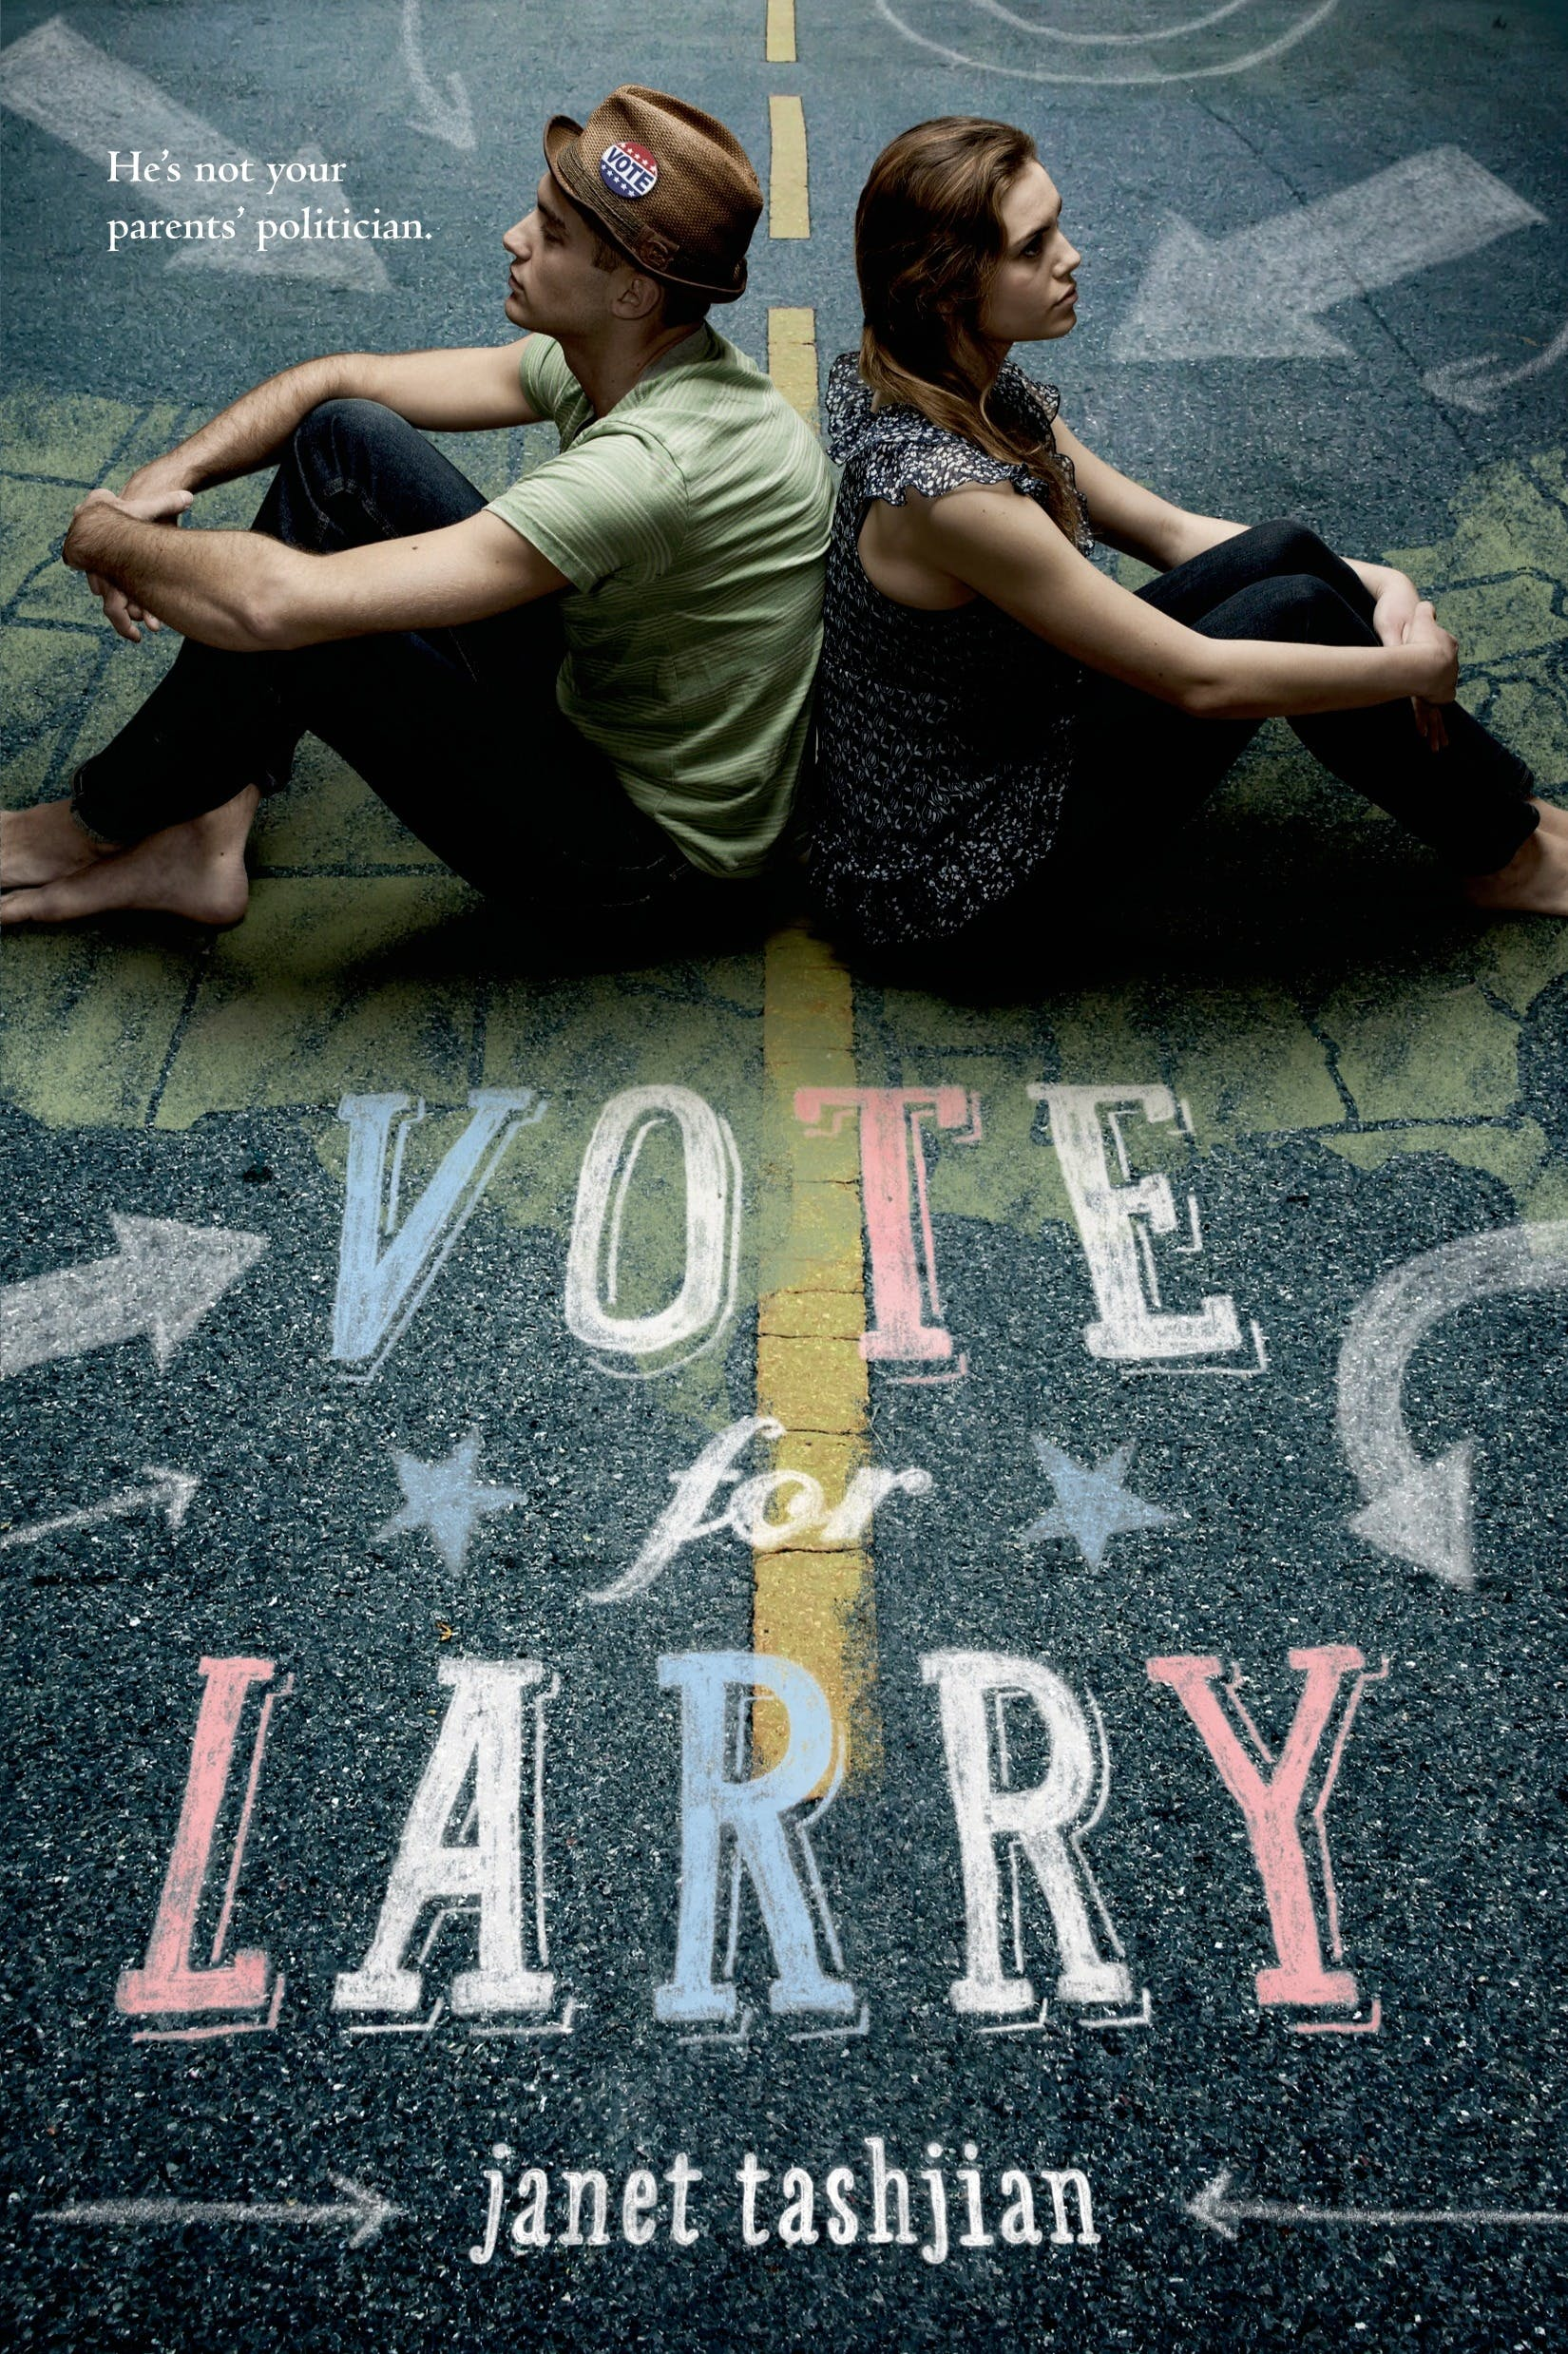 Image of Vote for Larry